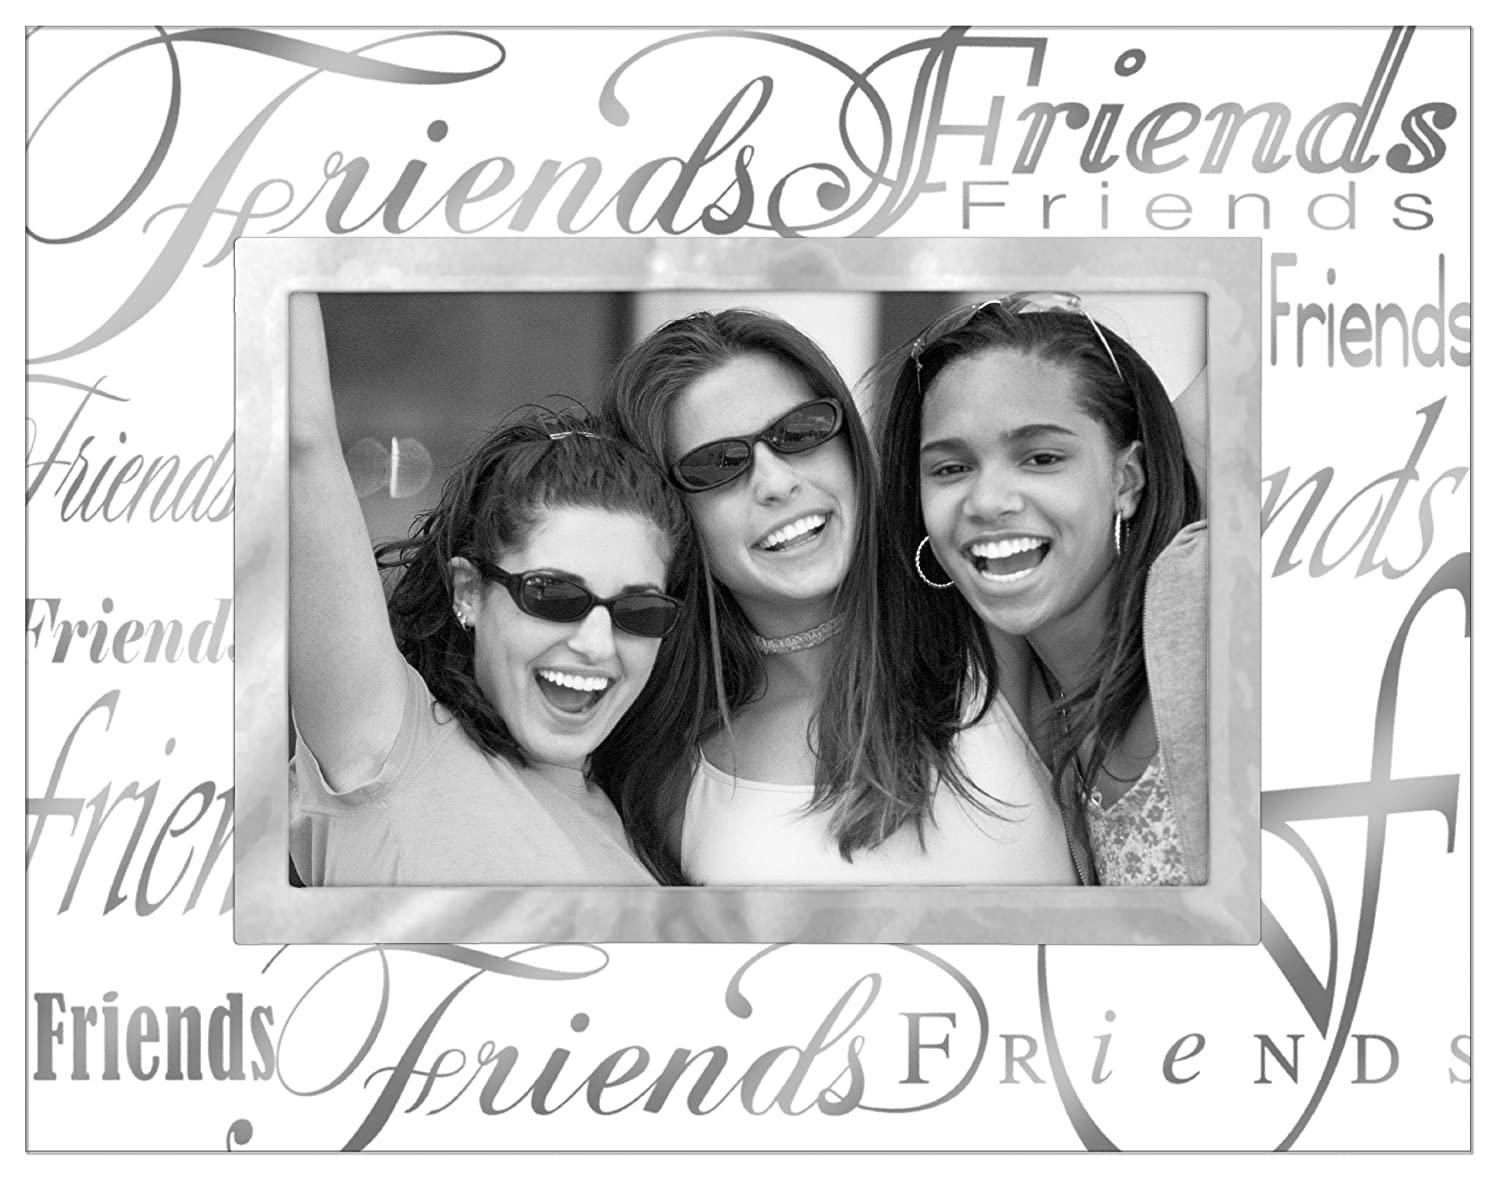 Malden Clear Expressions Glass Picture Frame, Friends, 4 by 6-Inch Malden International Designs 3038-46